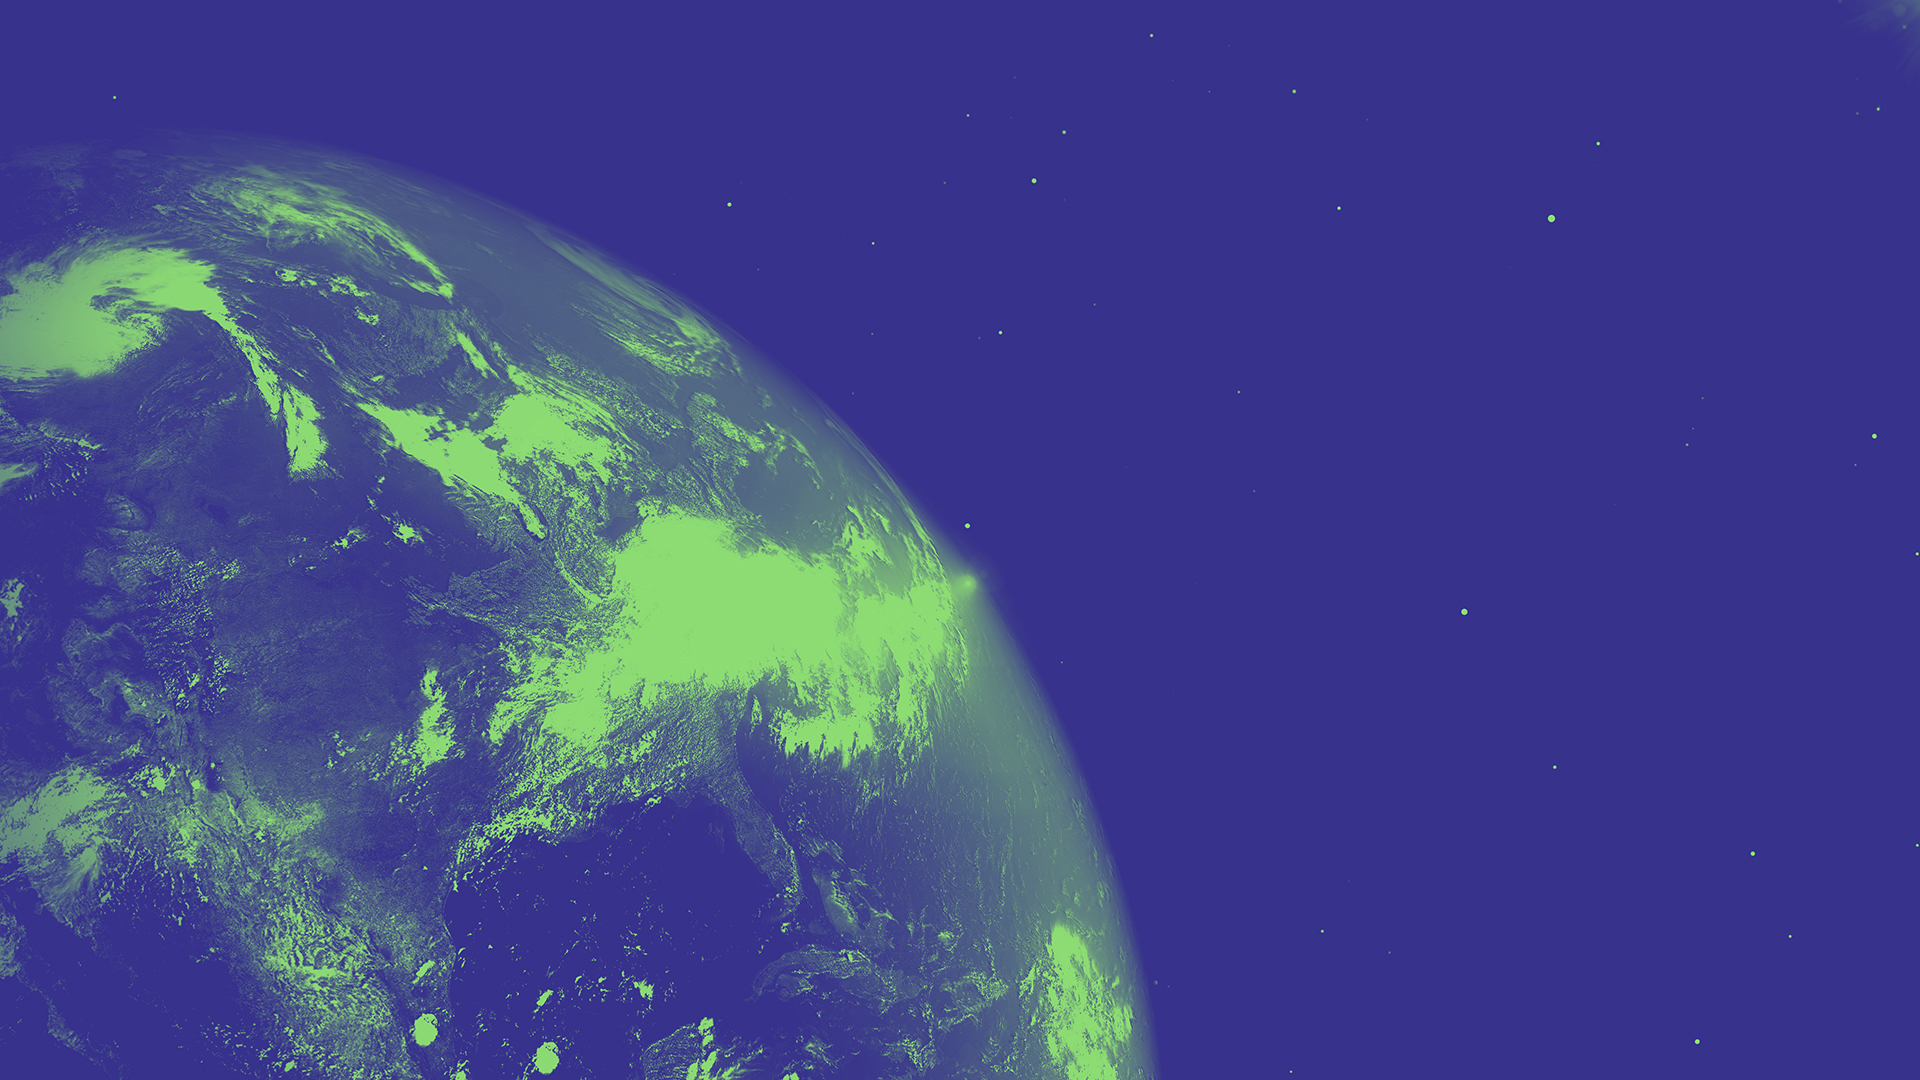 An image showing a globe floating in space, colourised in green and blue